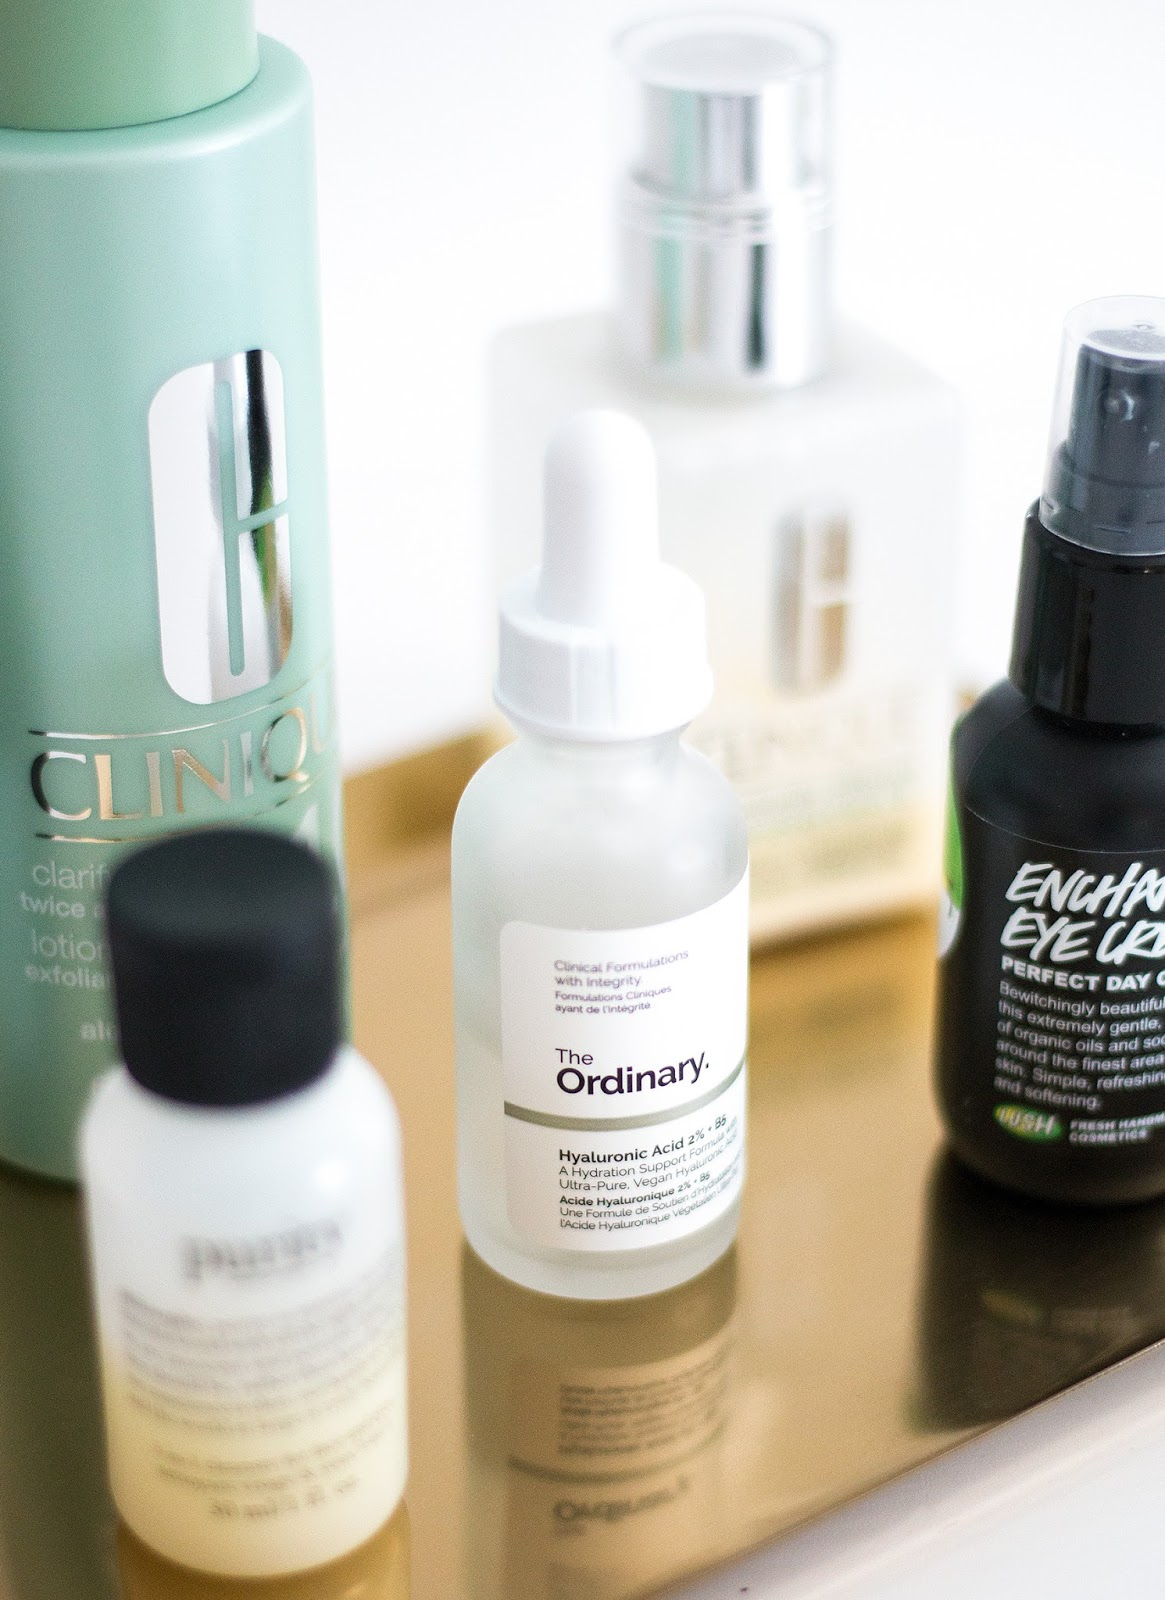 Skincare products | The Ordinary Hyaluronic Acid | Skincare routine for dry skin